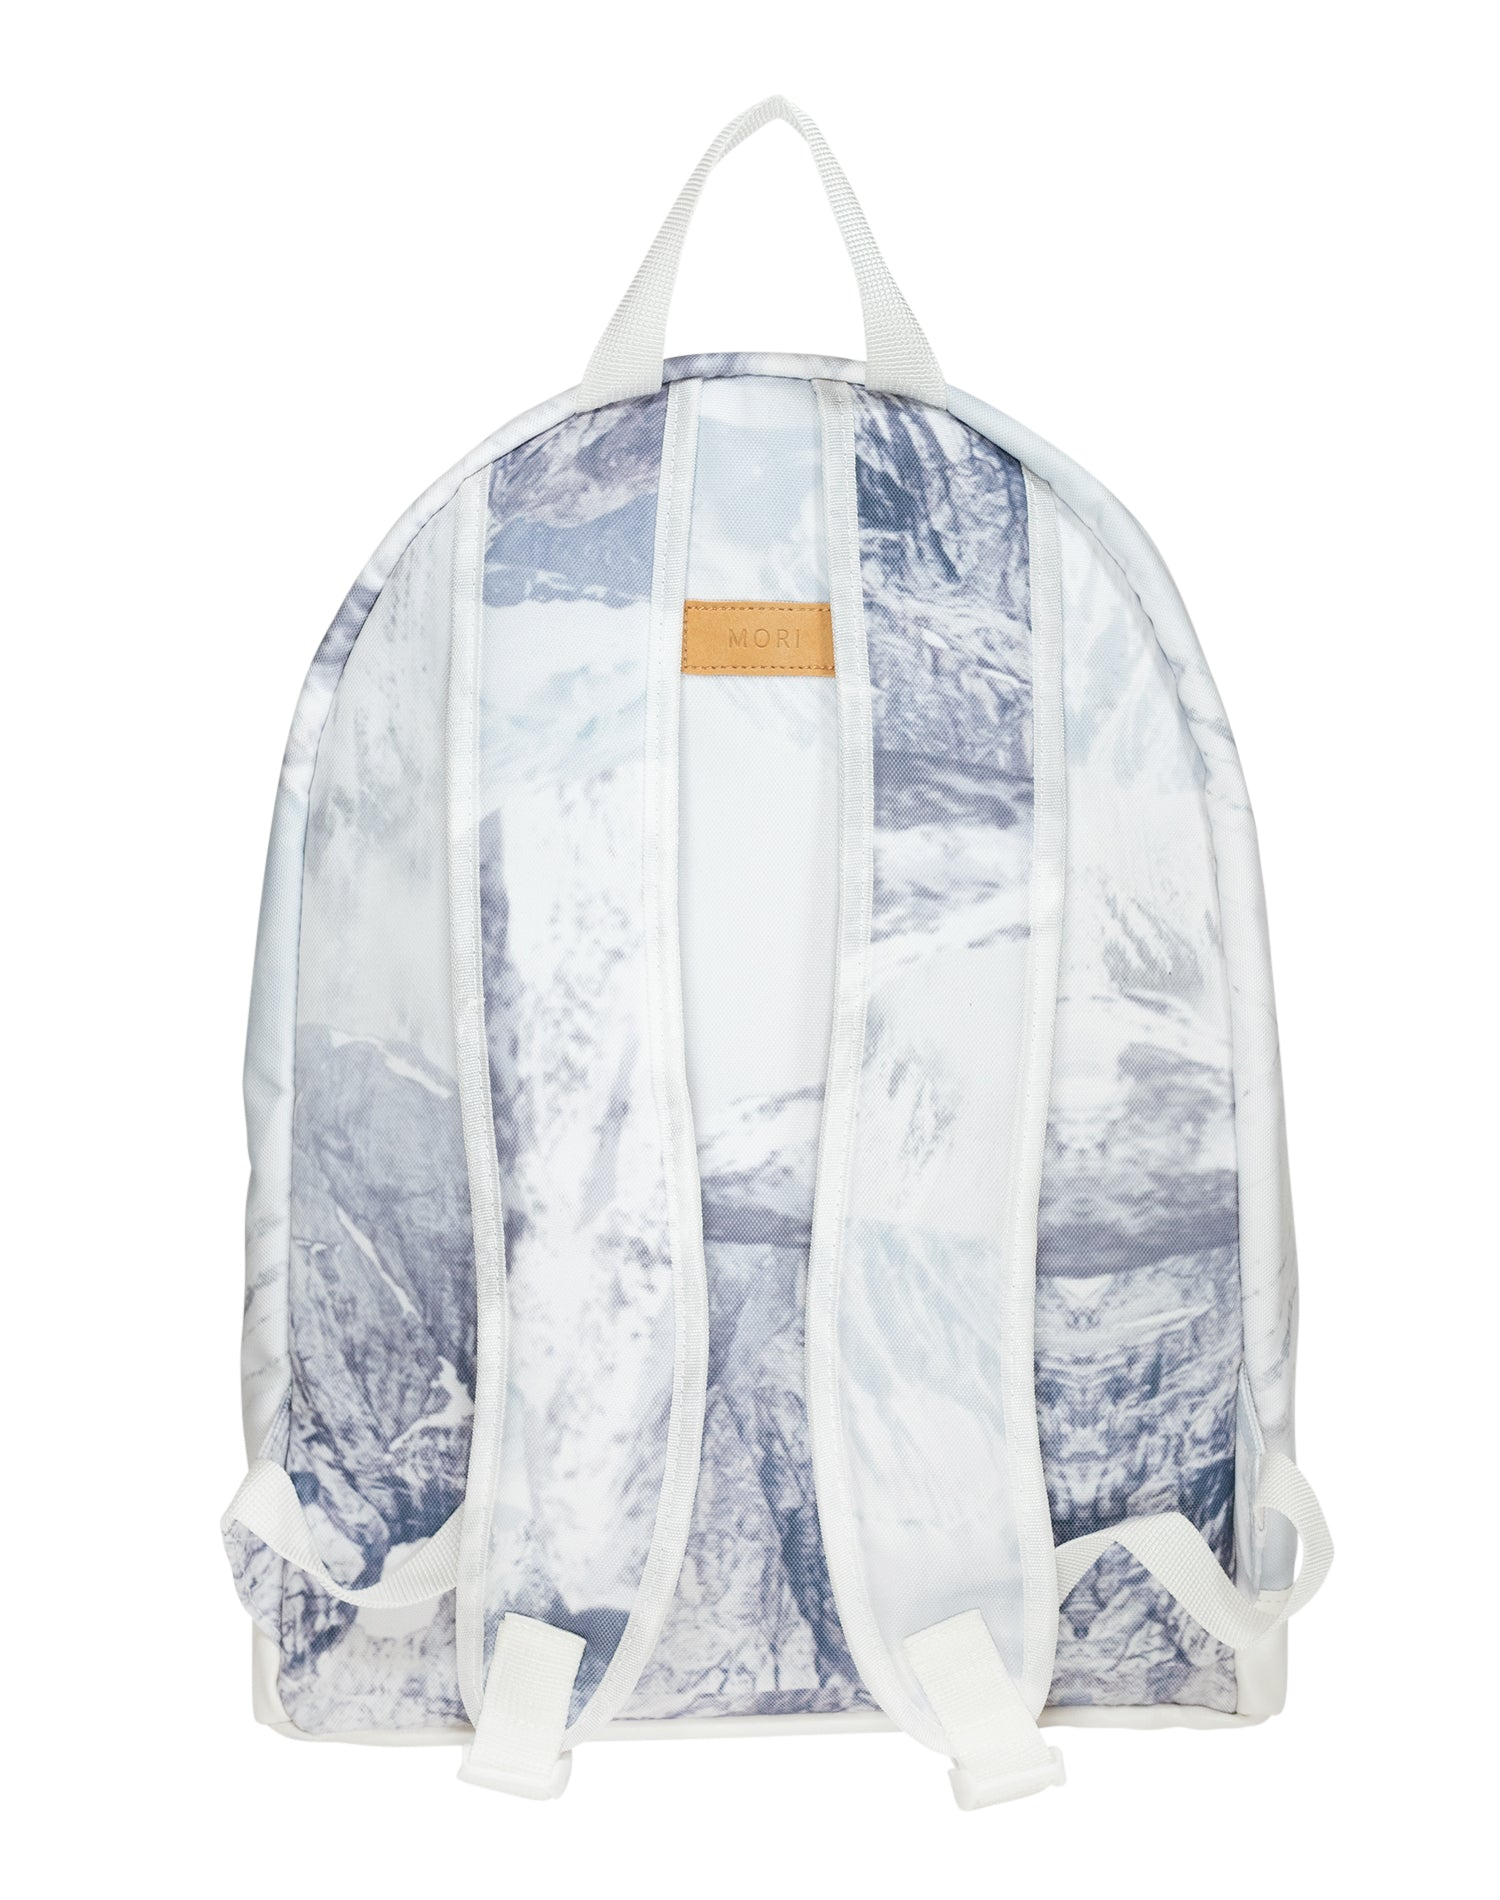 Alpine Peaks Cotton Canvas Backpack.高山圖案棉帆布背囊